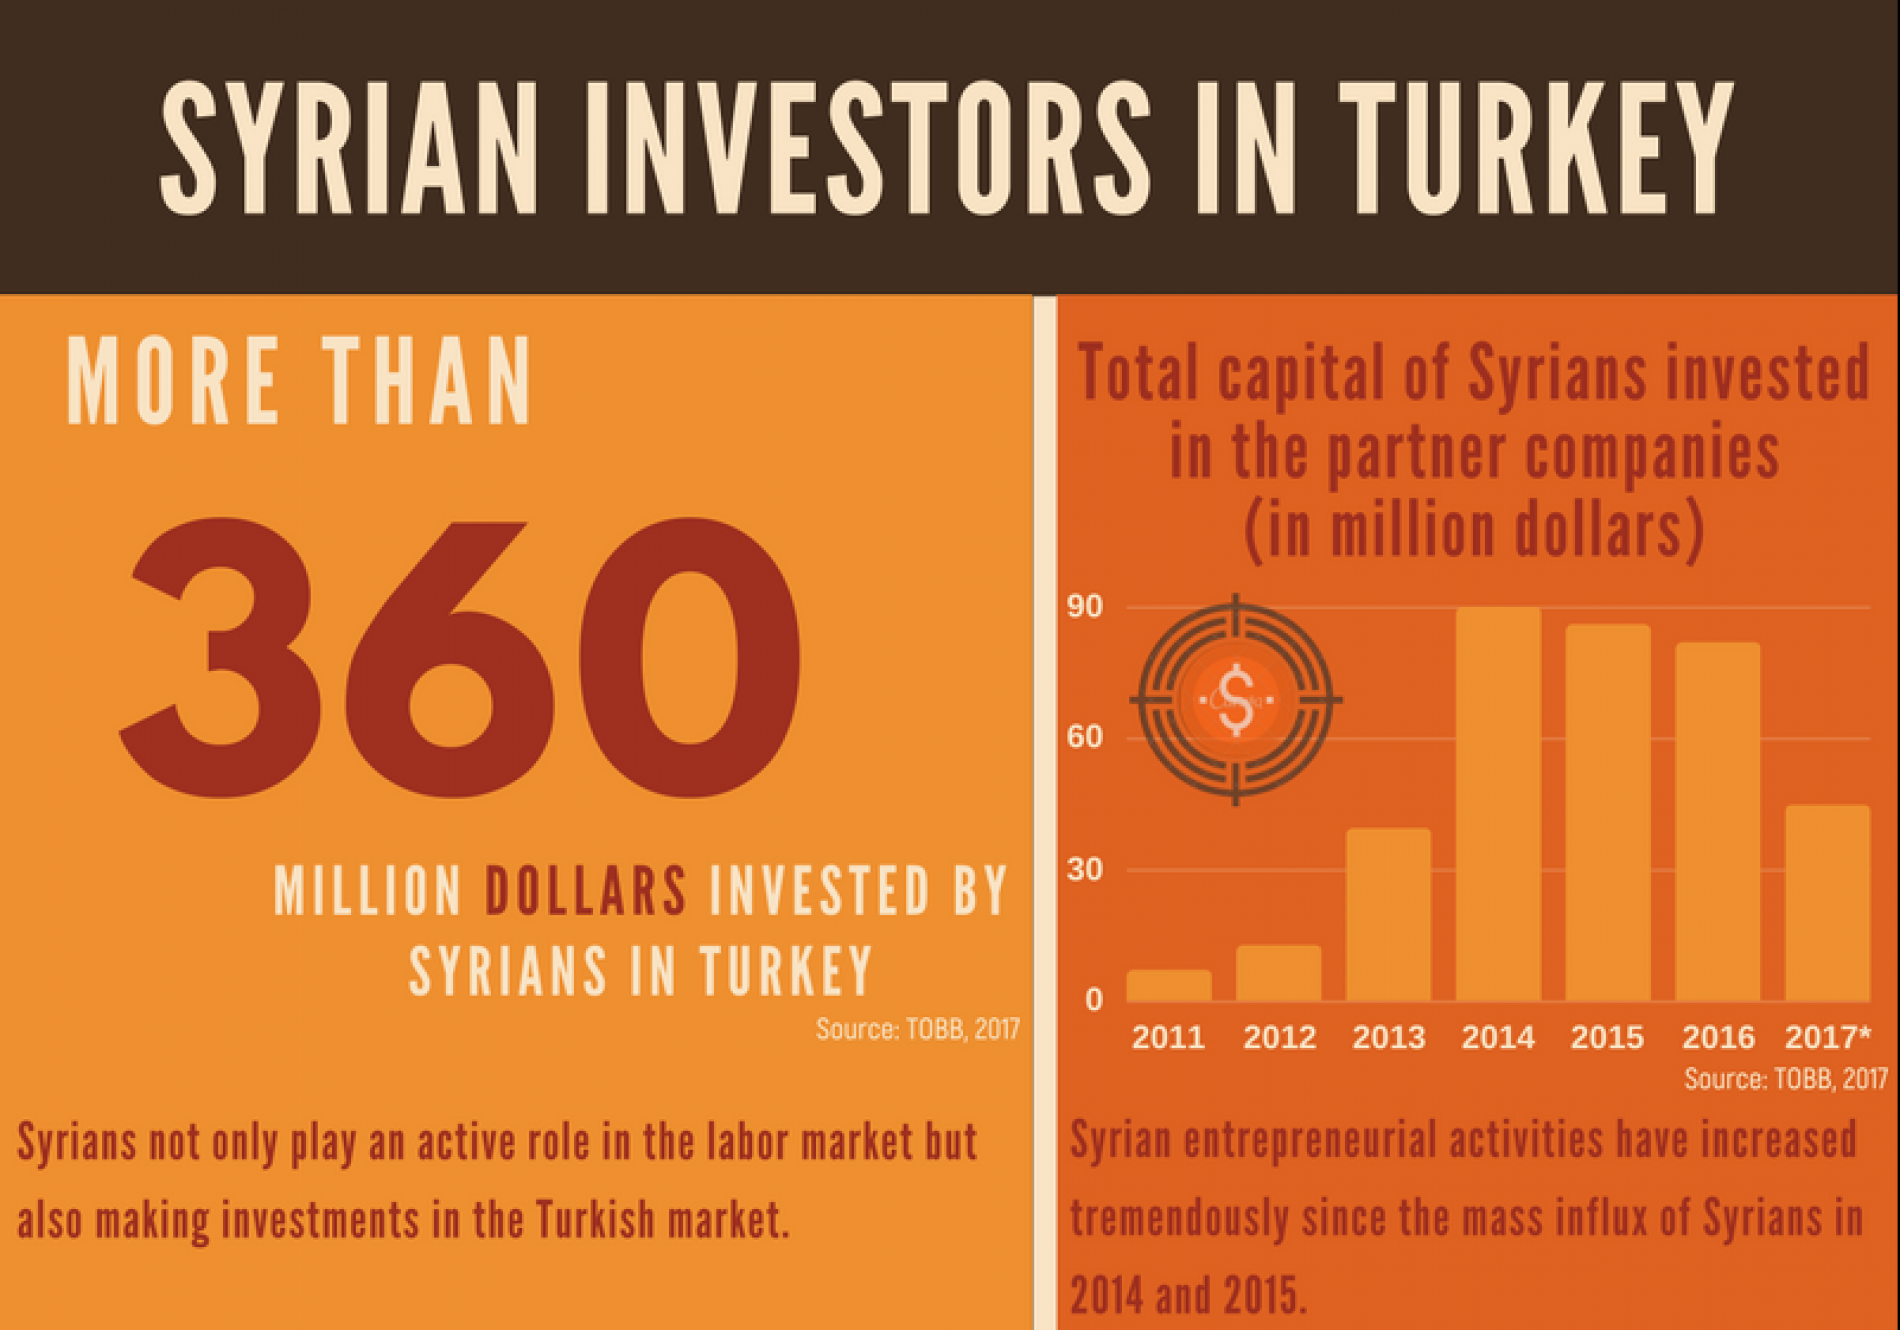 Syrian Investors in Turkey